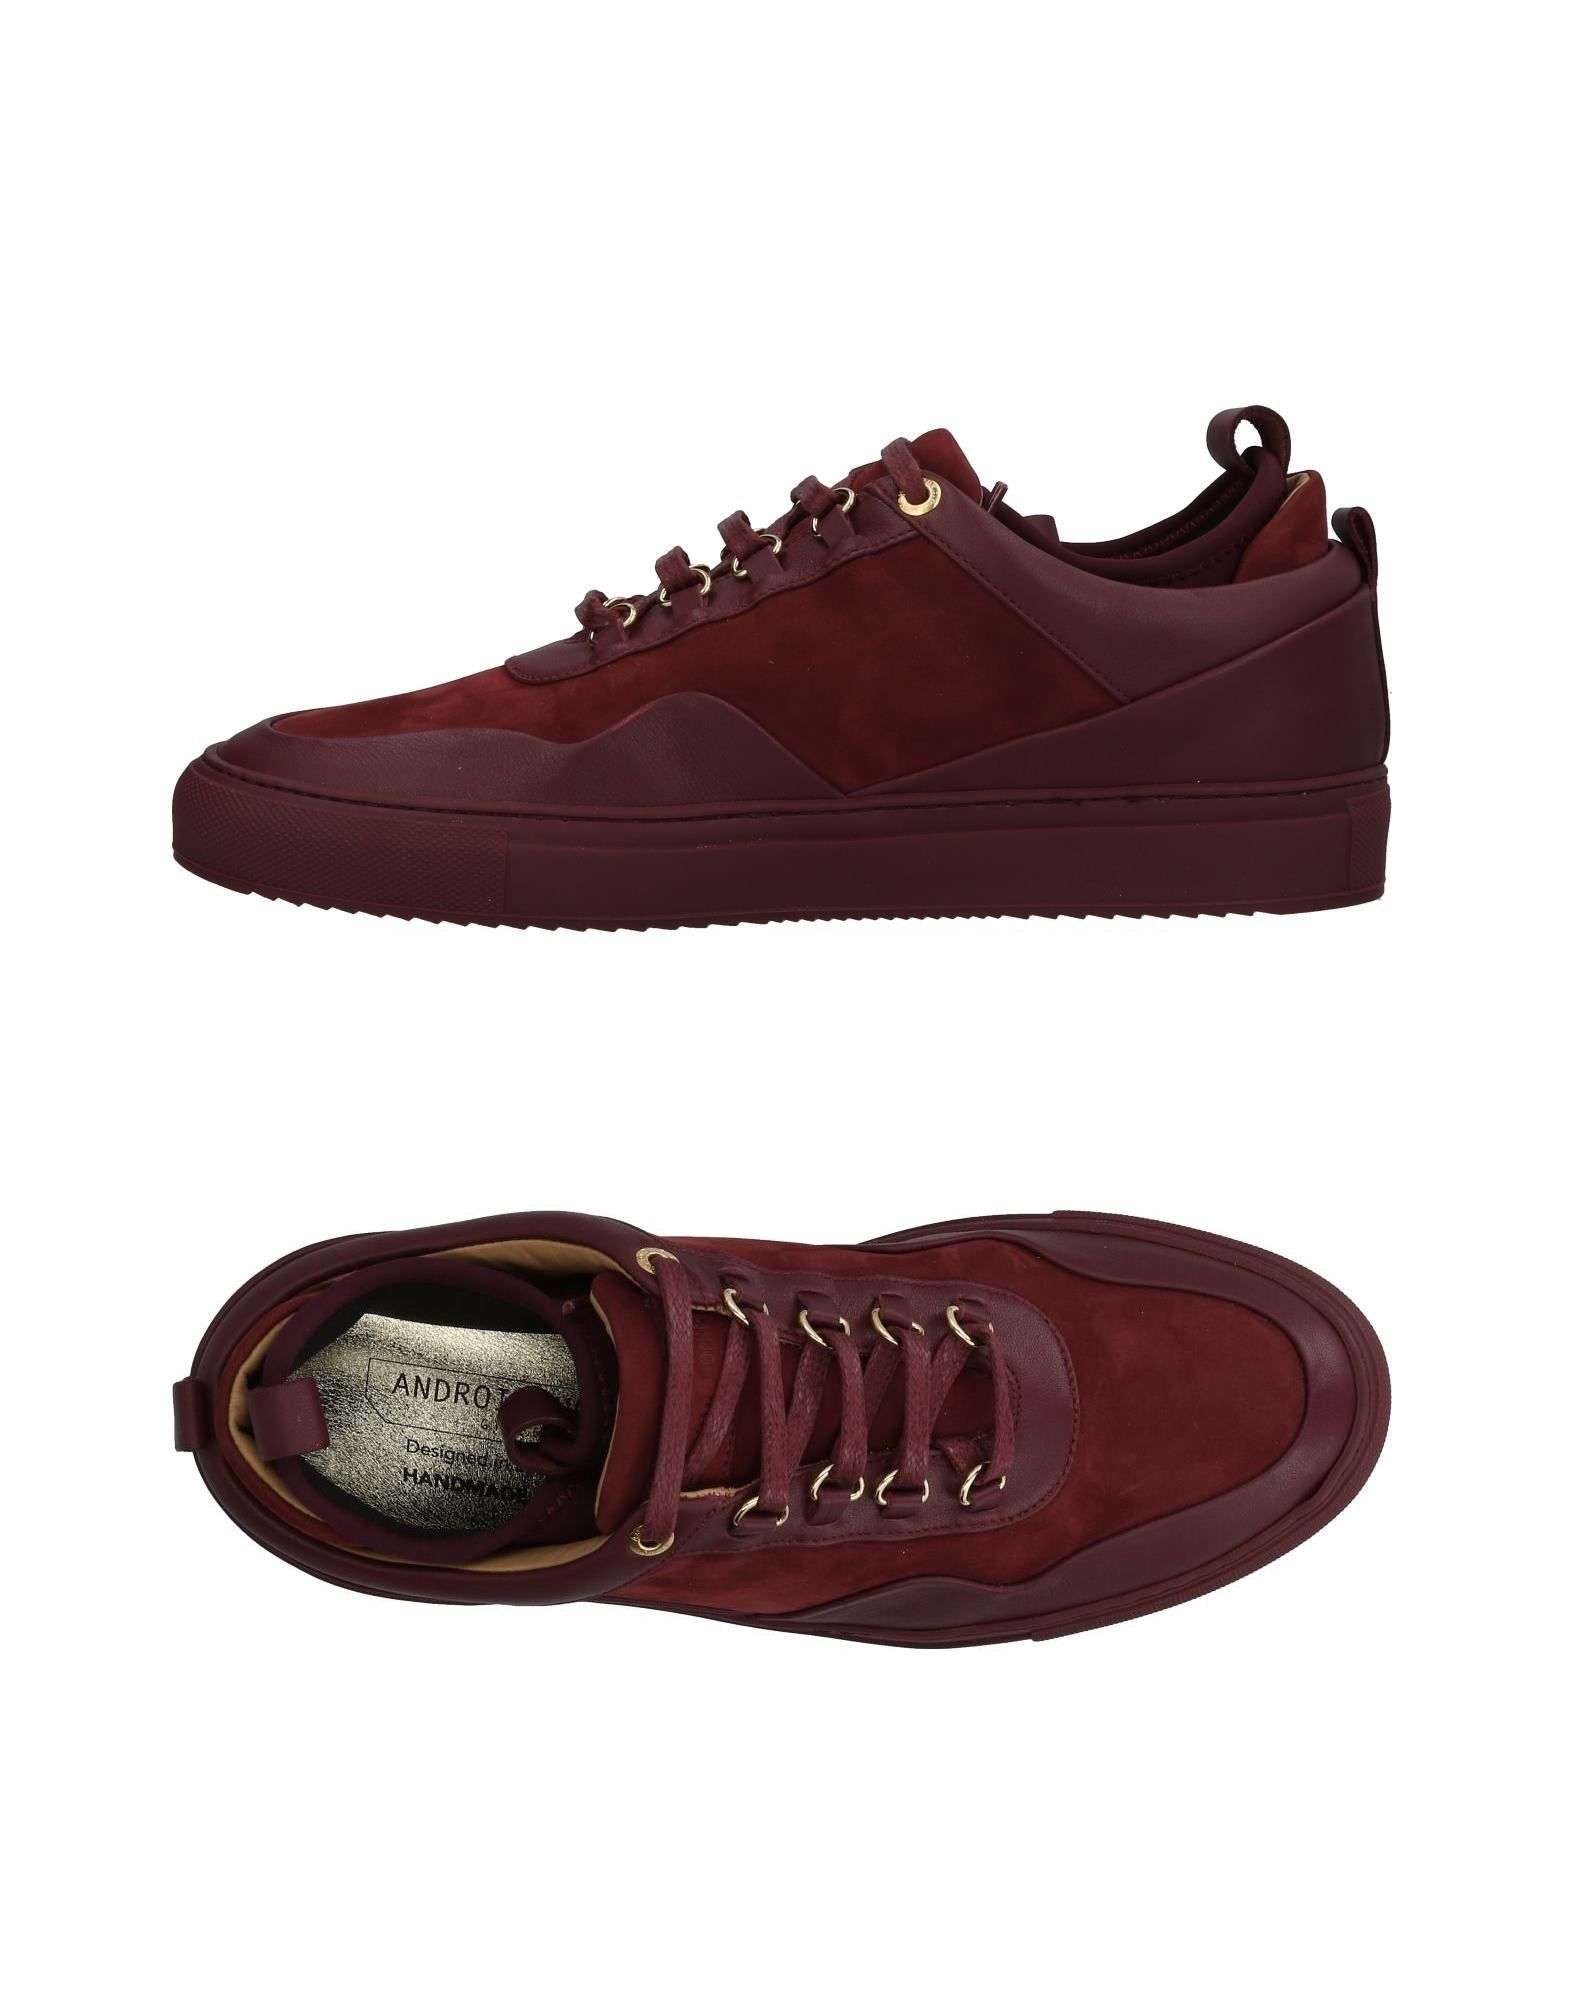 ANDROID HOMME Sneakers in Maroon